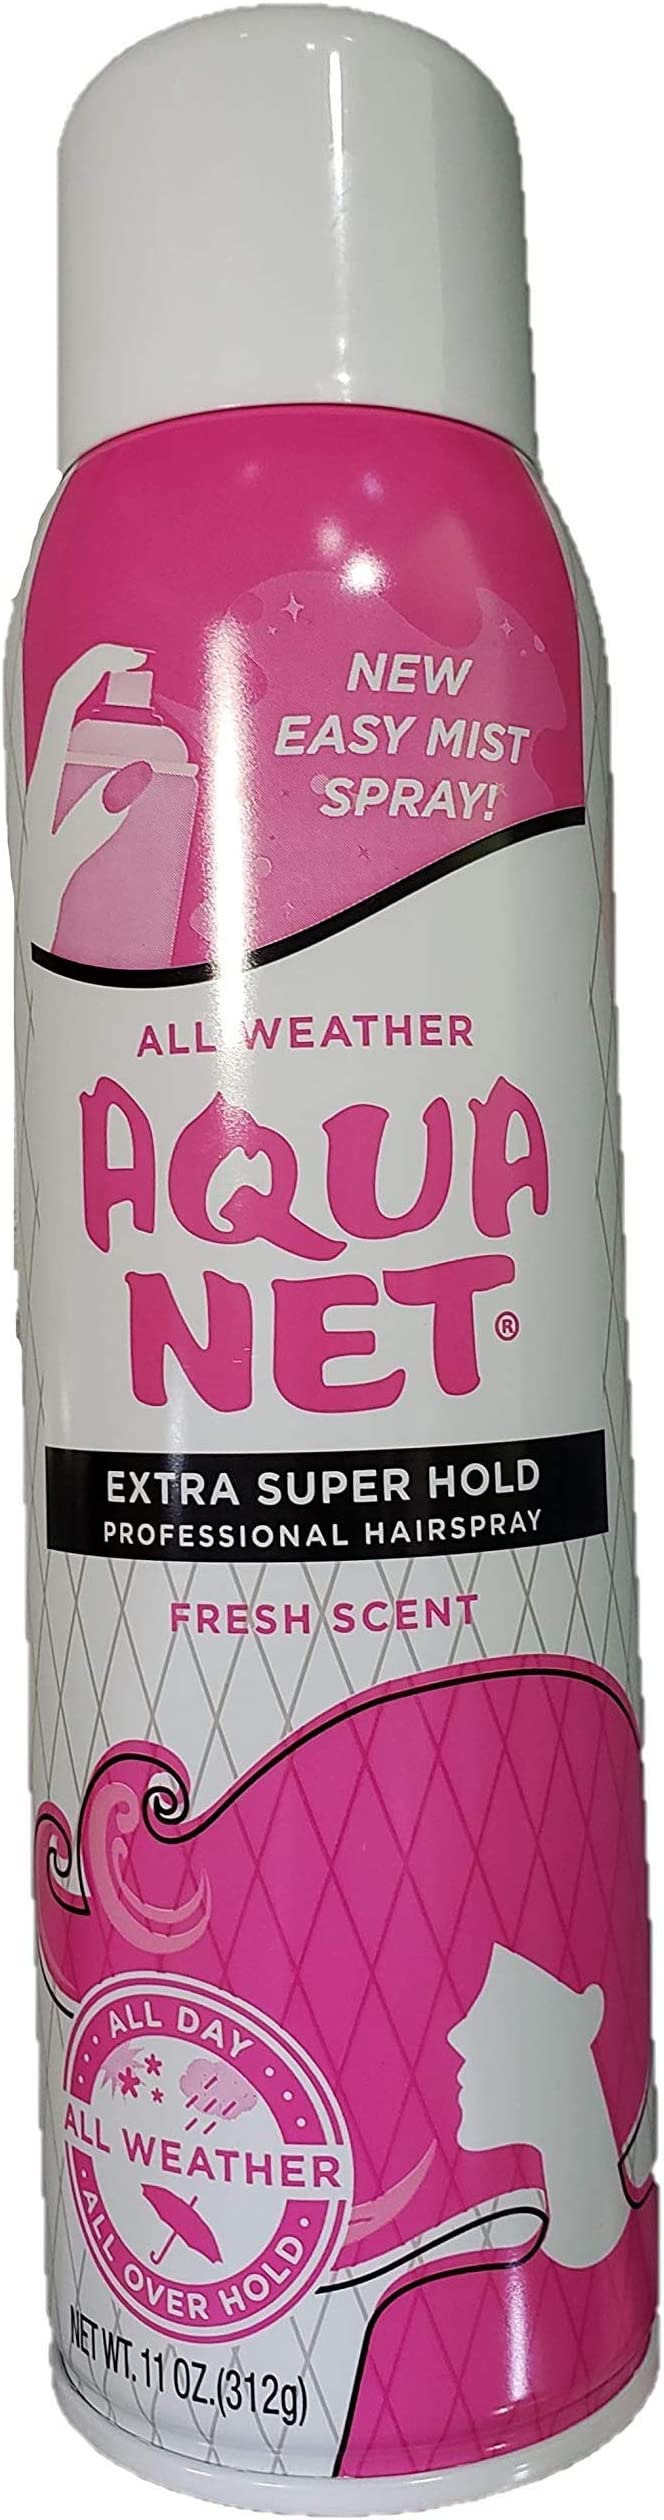 Amazon.com: Aqua neta Professional Hair Spray extra super ...